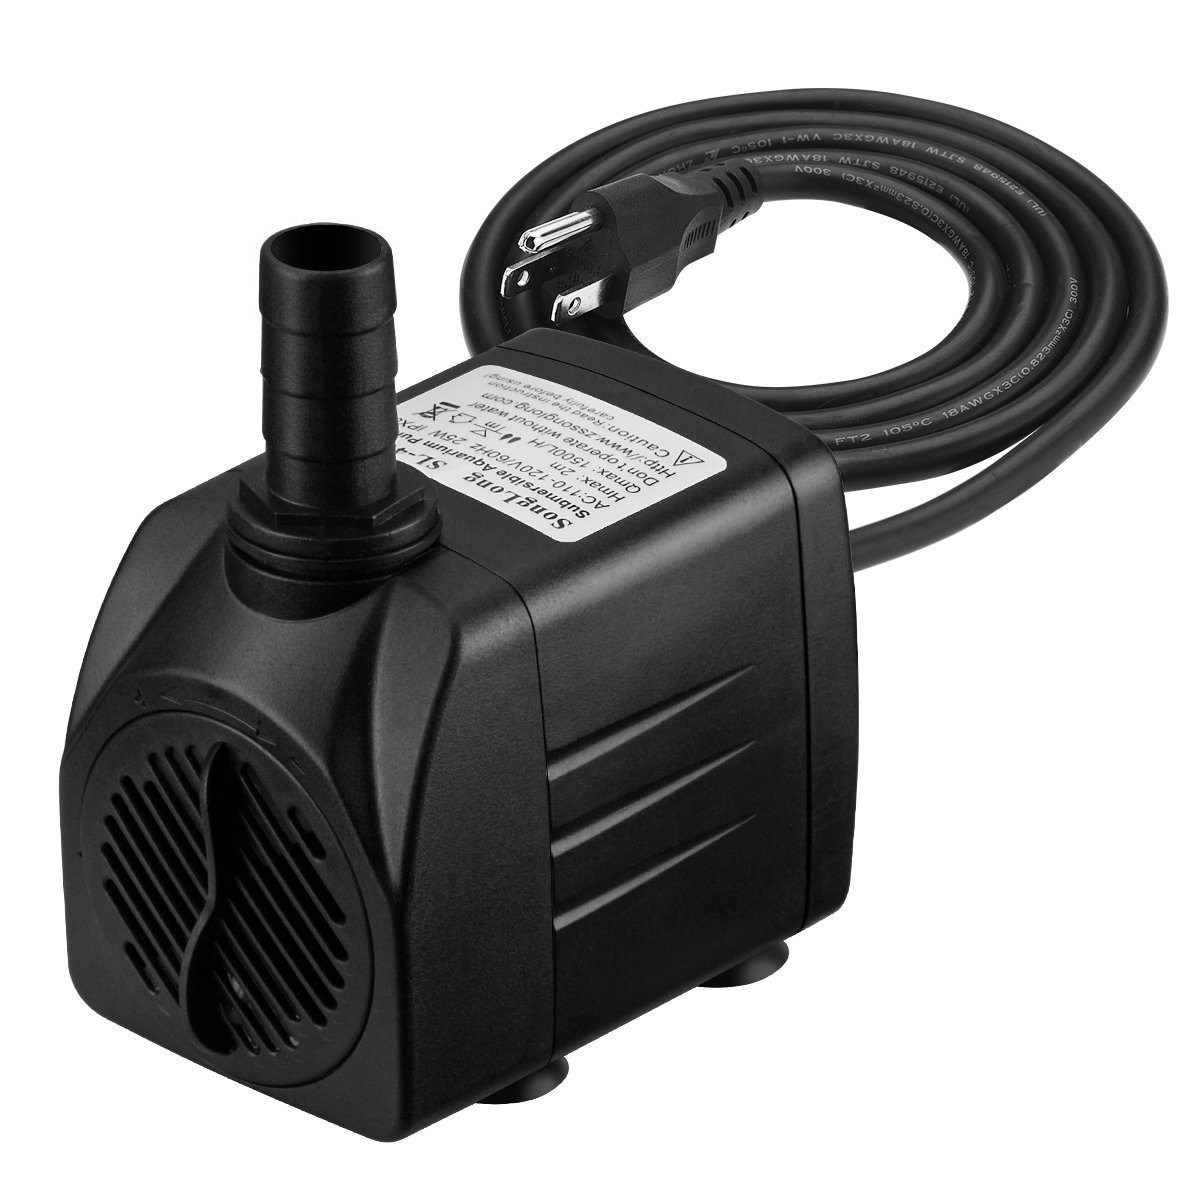 Homasy 400GPH Submersible Pump 25W Ultra Quiet Fountain Water Pump with 5.9ft Power Cord, 2 Nozzles for Aquarium, Fish Tank, Pond, Hydroponics, Statuary